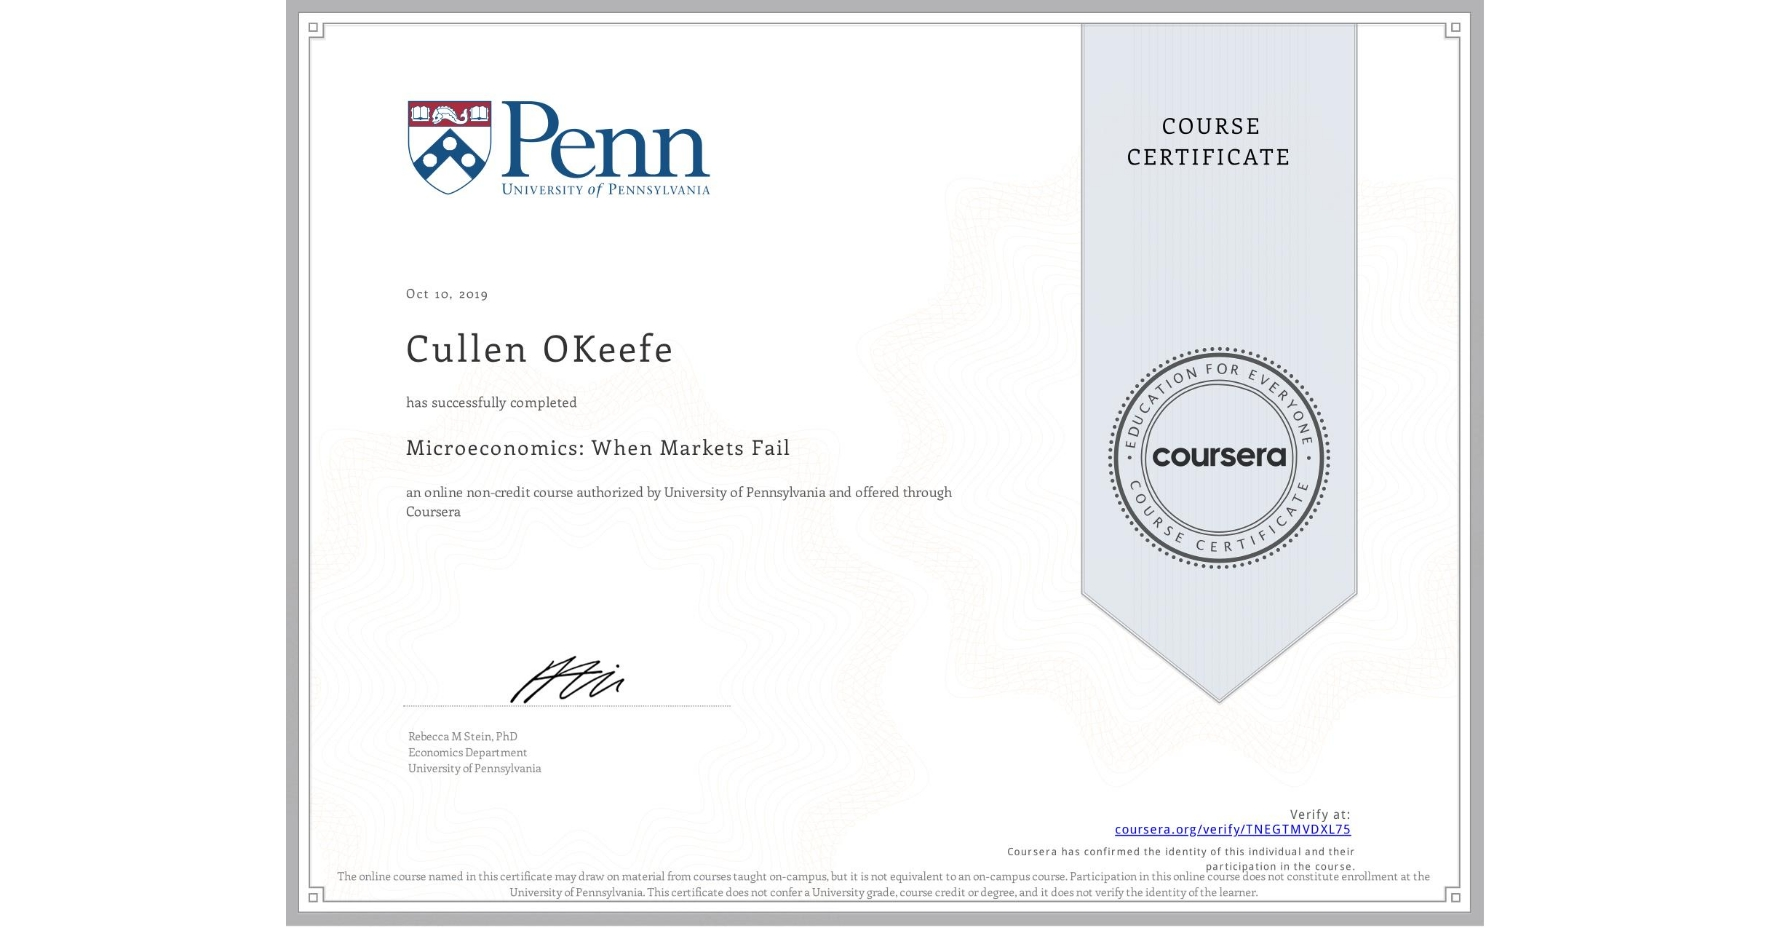 View certificate for Cullen OKeefe, Microeconomics: When Markets Fail, an online non-credit course authorized by University of Pennsylvania and offered through Coursera